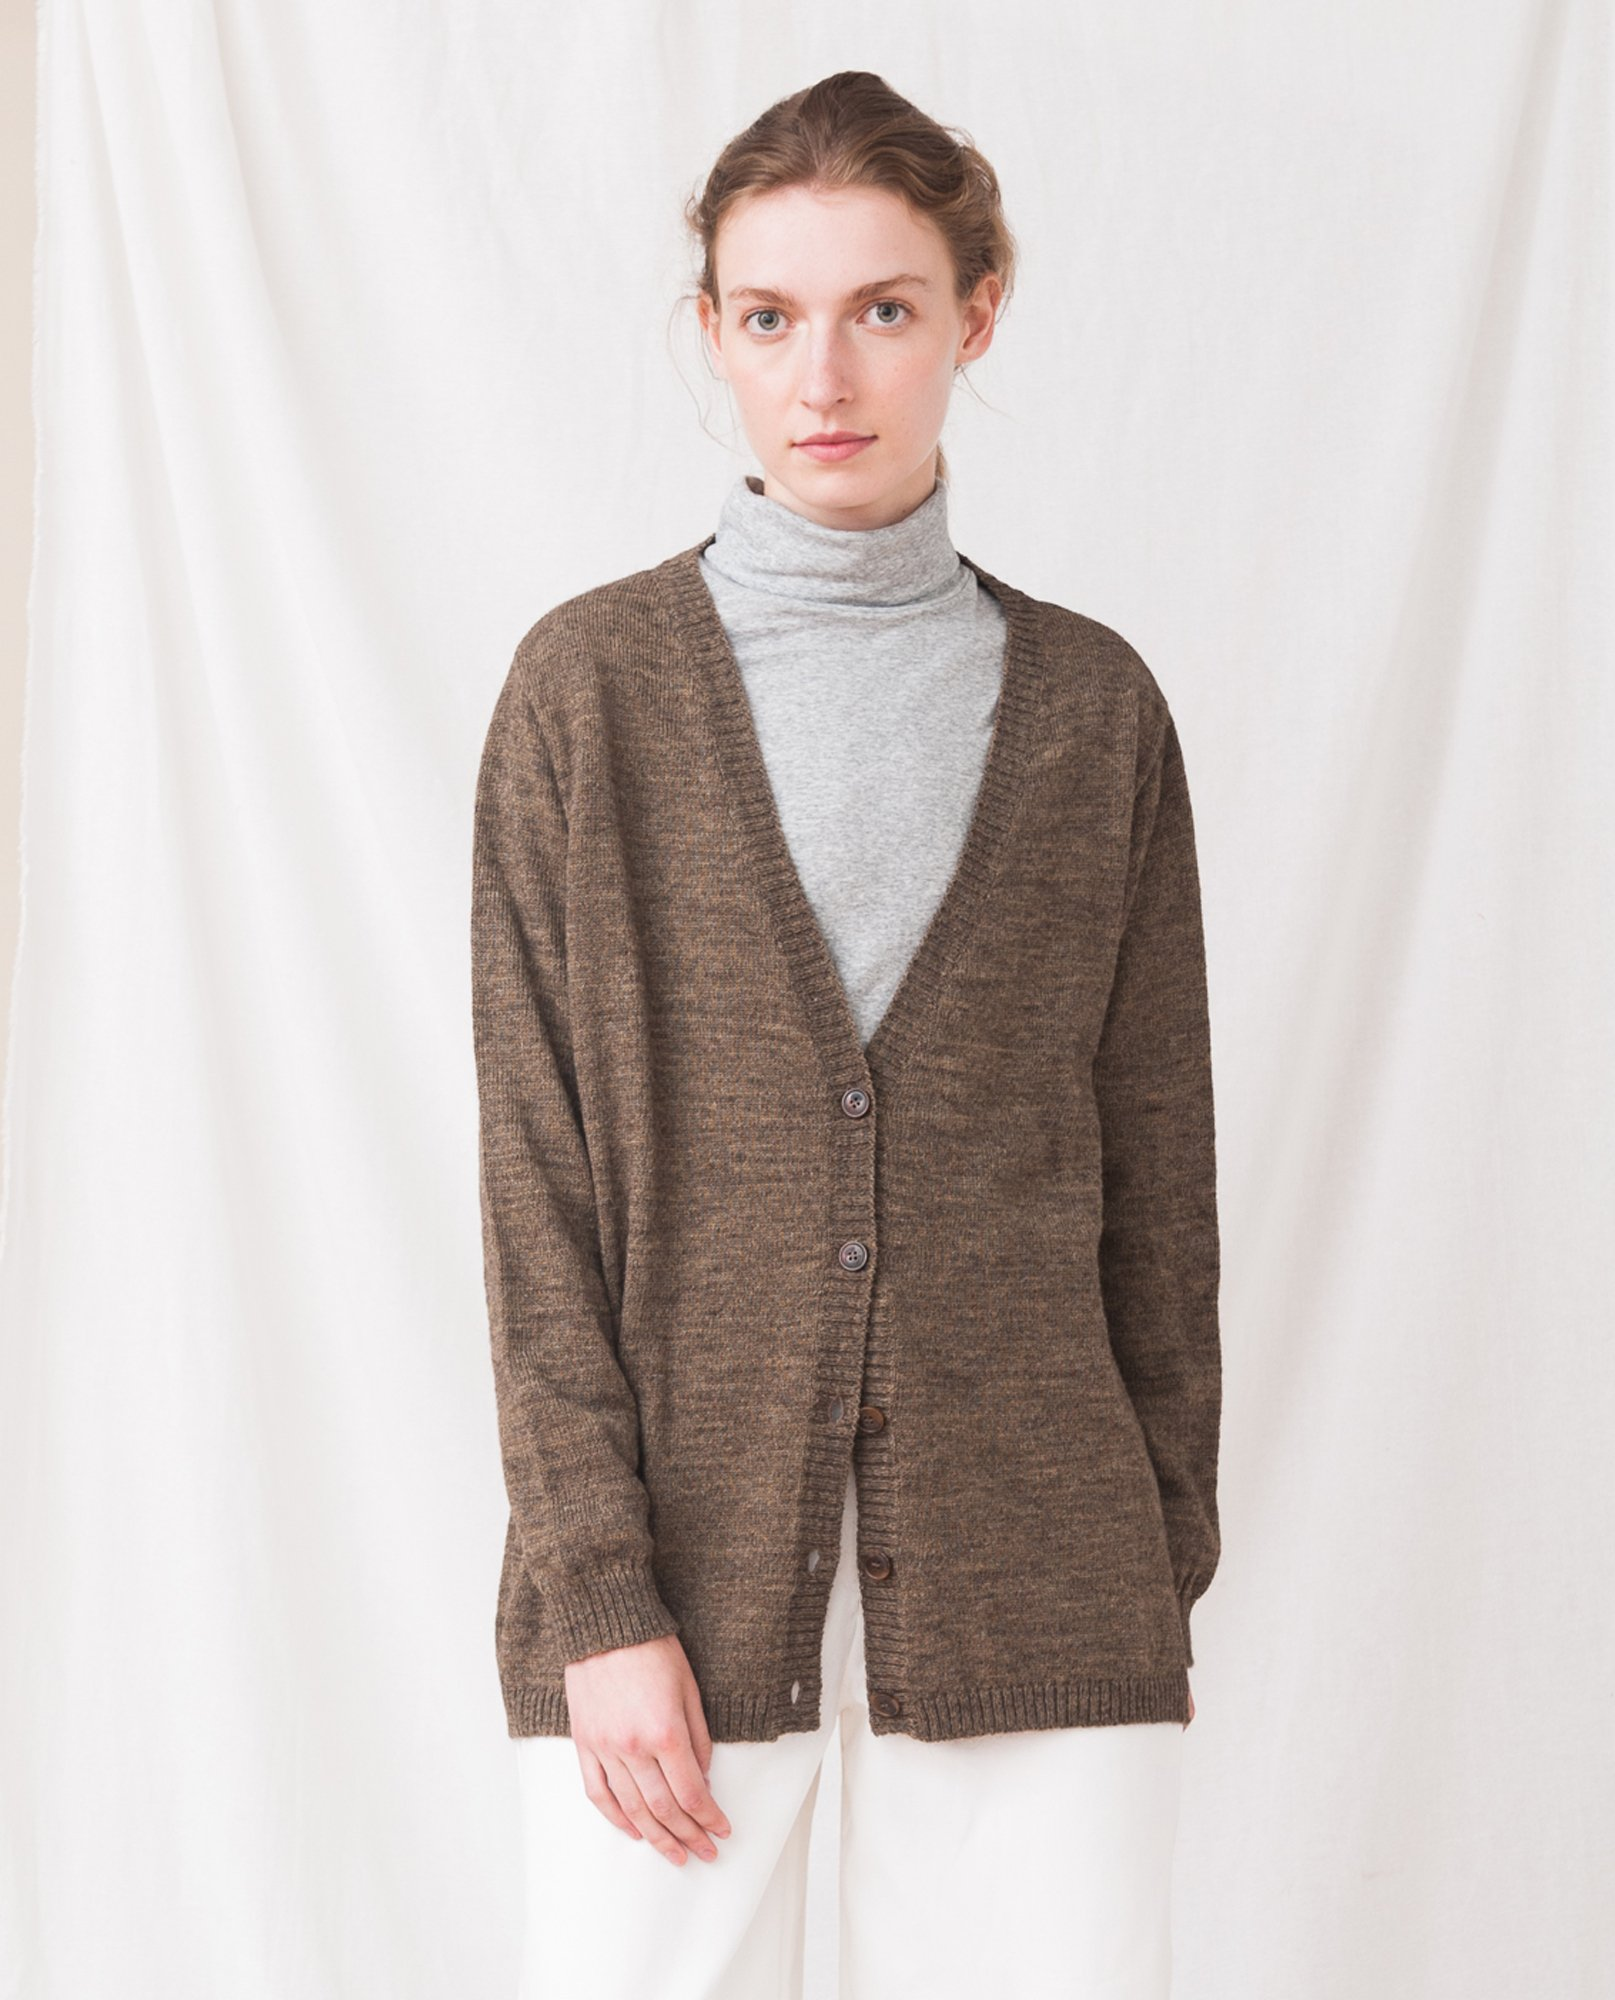 AMBER Wool Knitted Cardigan In Tobacco from Beaumont Organic